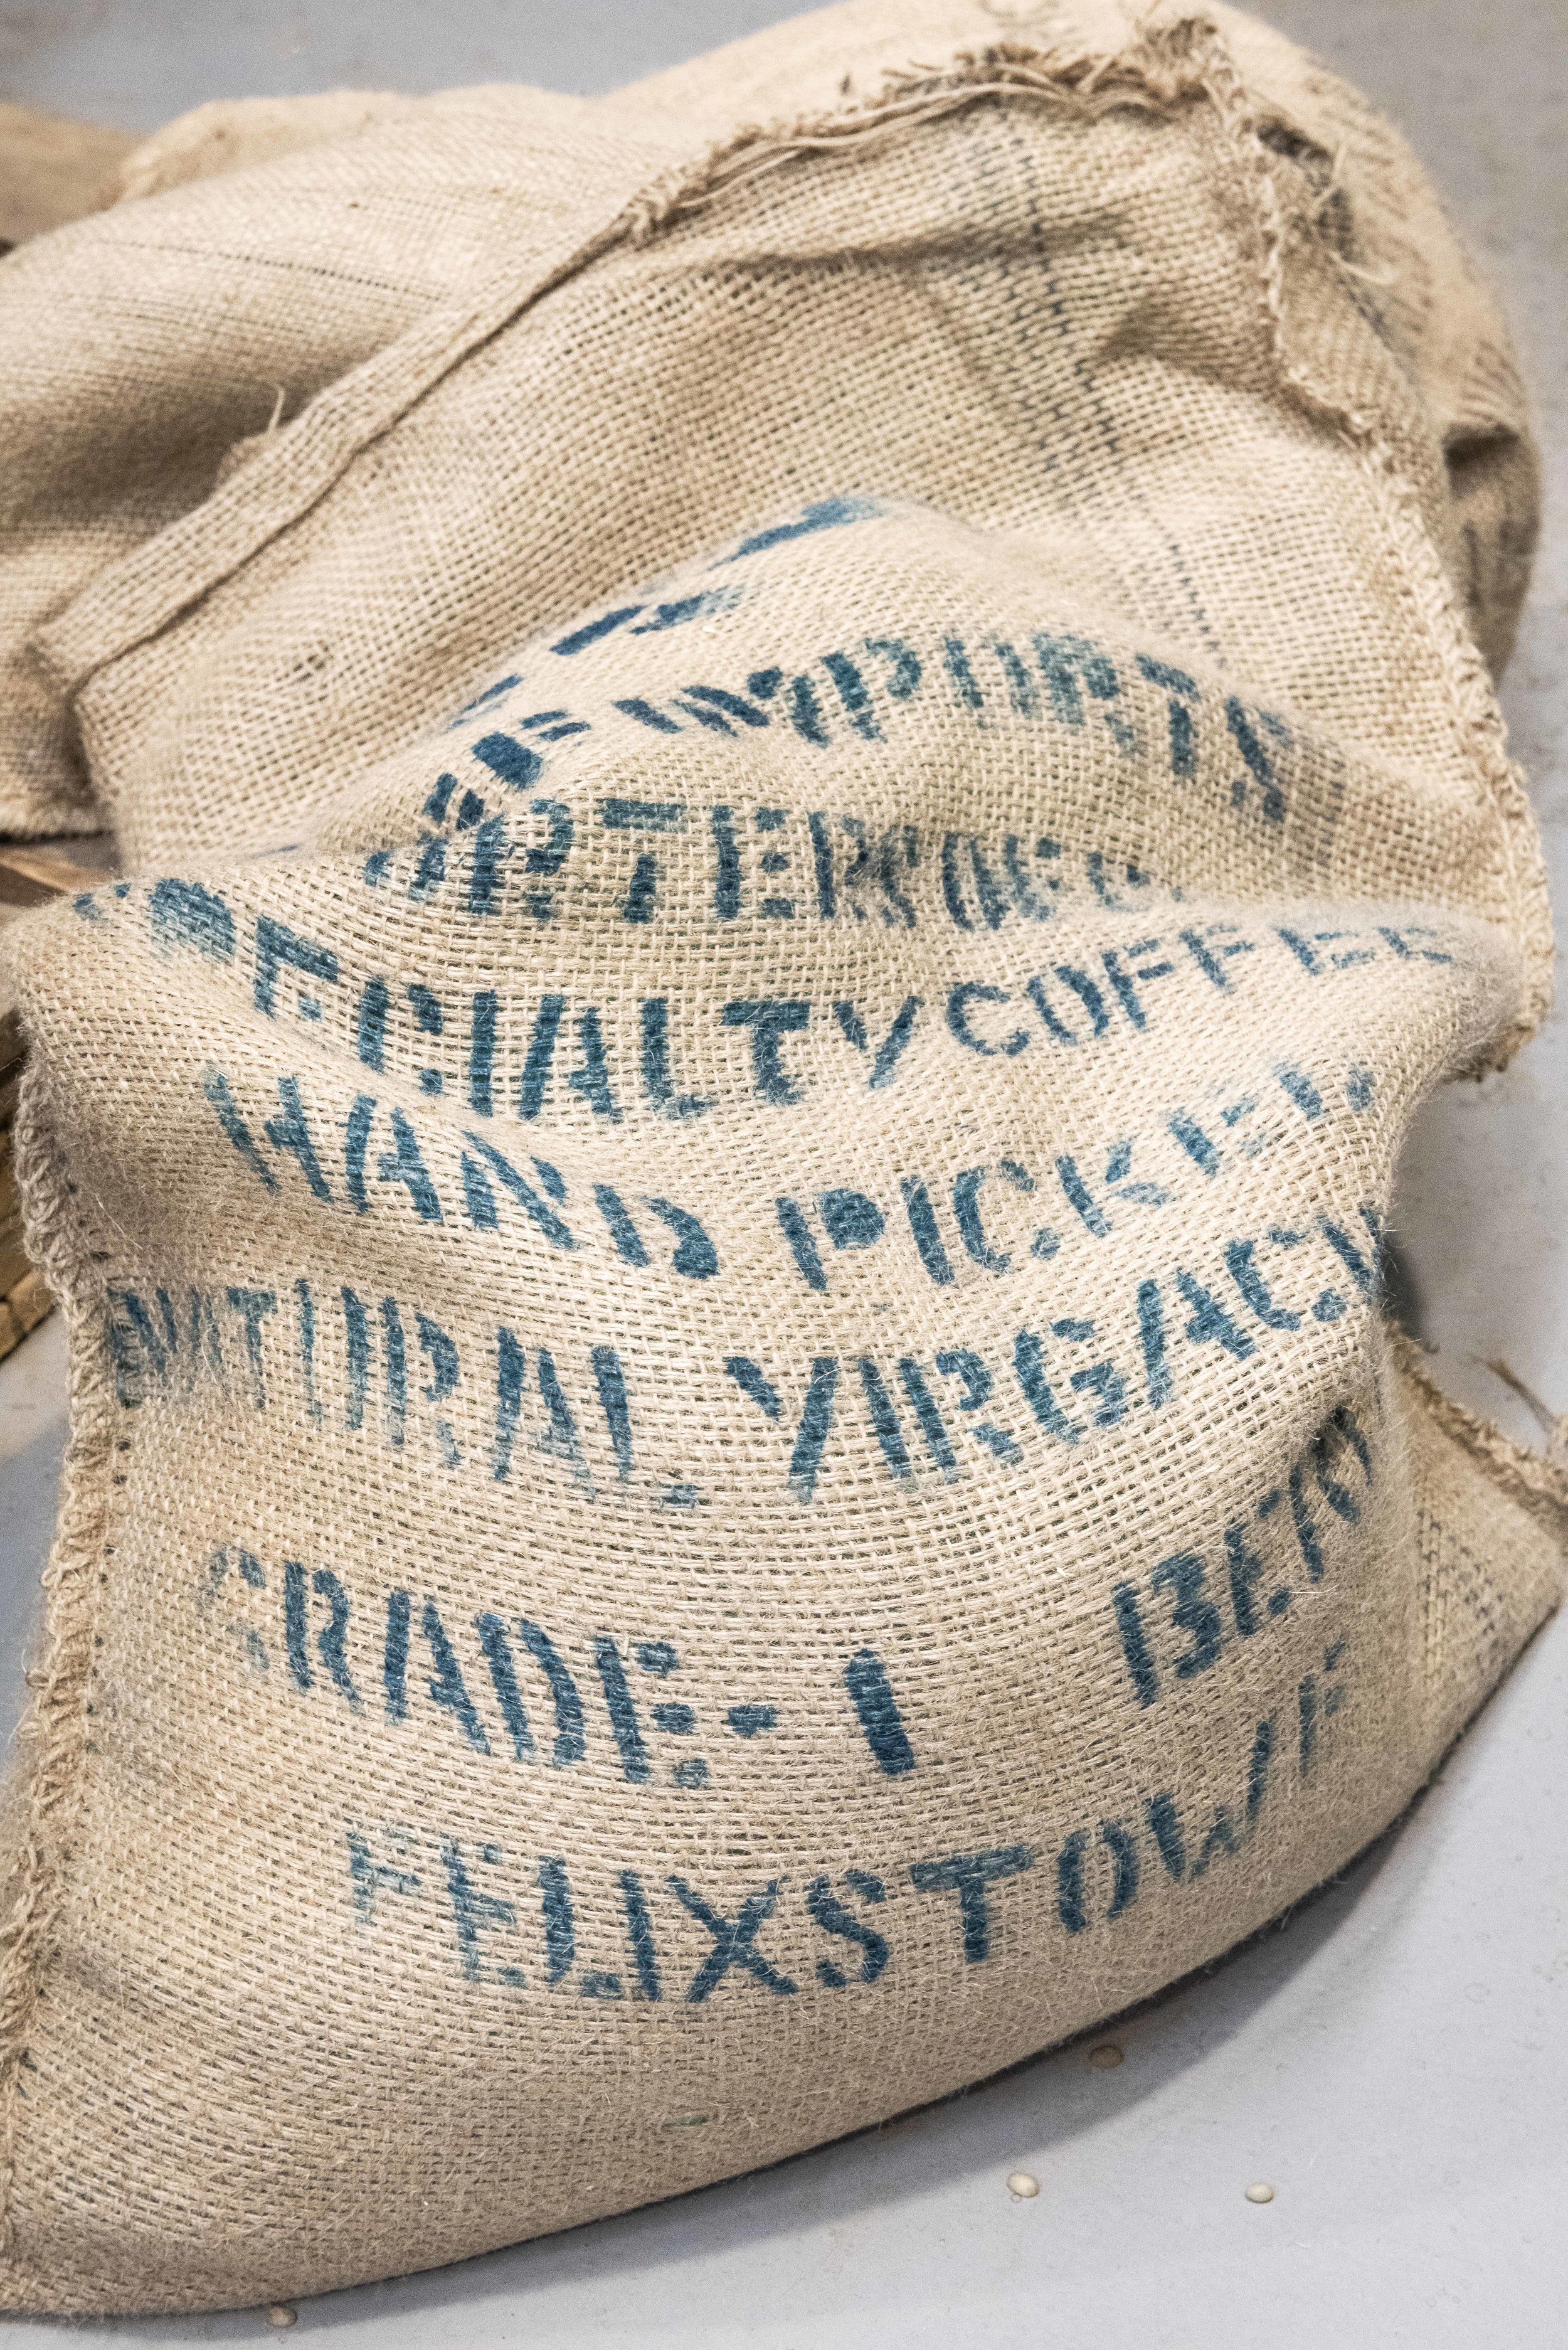 Bags of coffee for 80plus specialty coffee. Photo © Barcelona Food Experience.